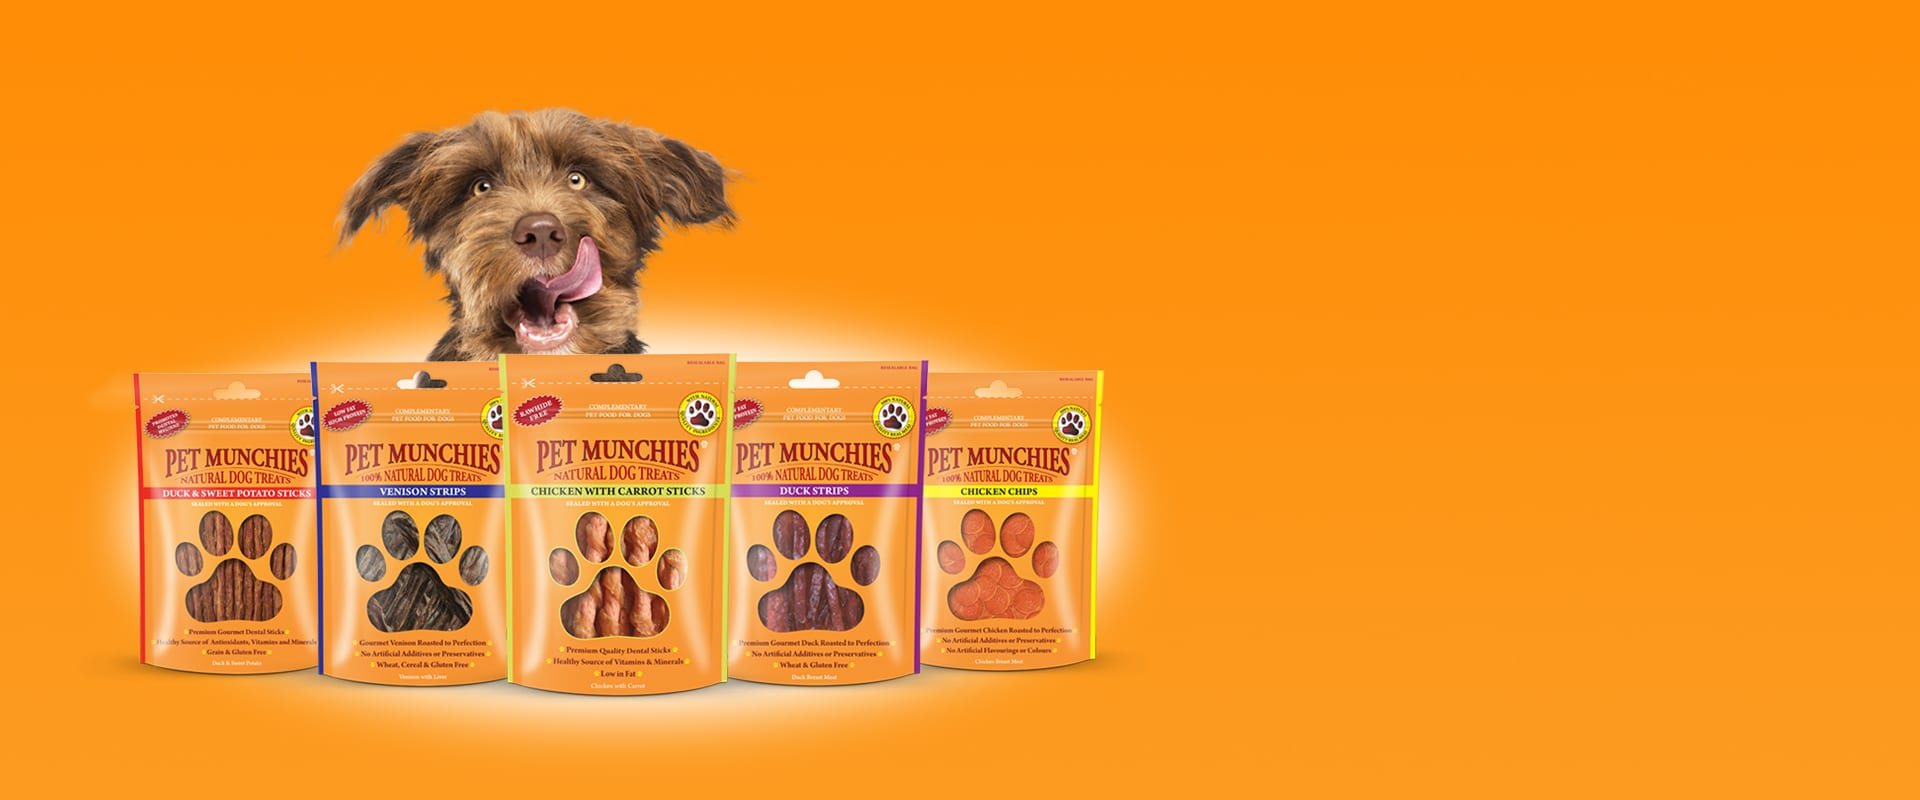 Pet Munchies banner